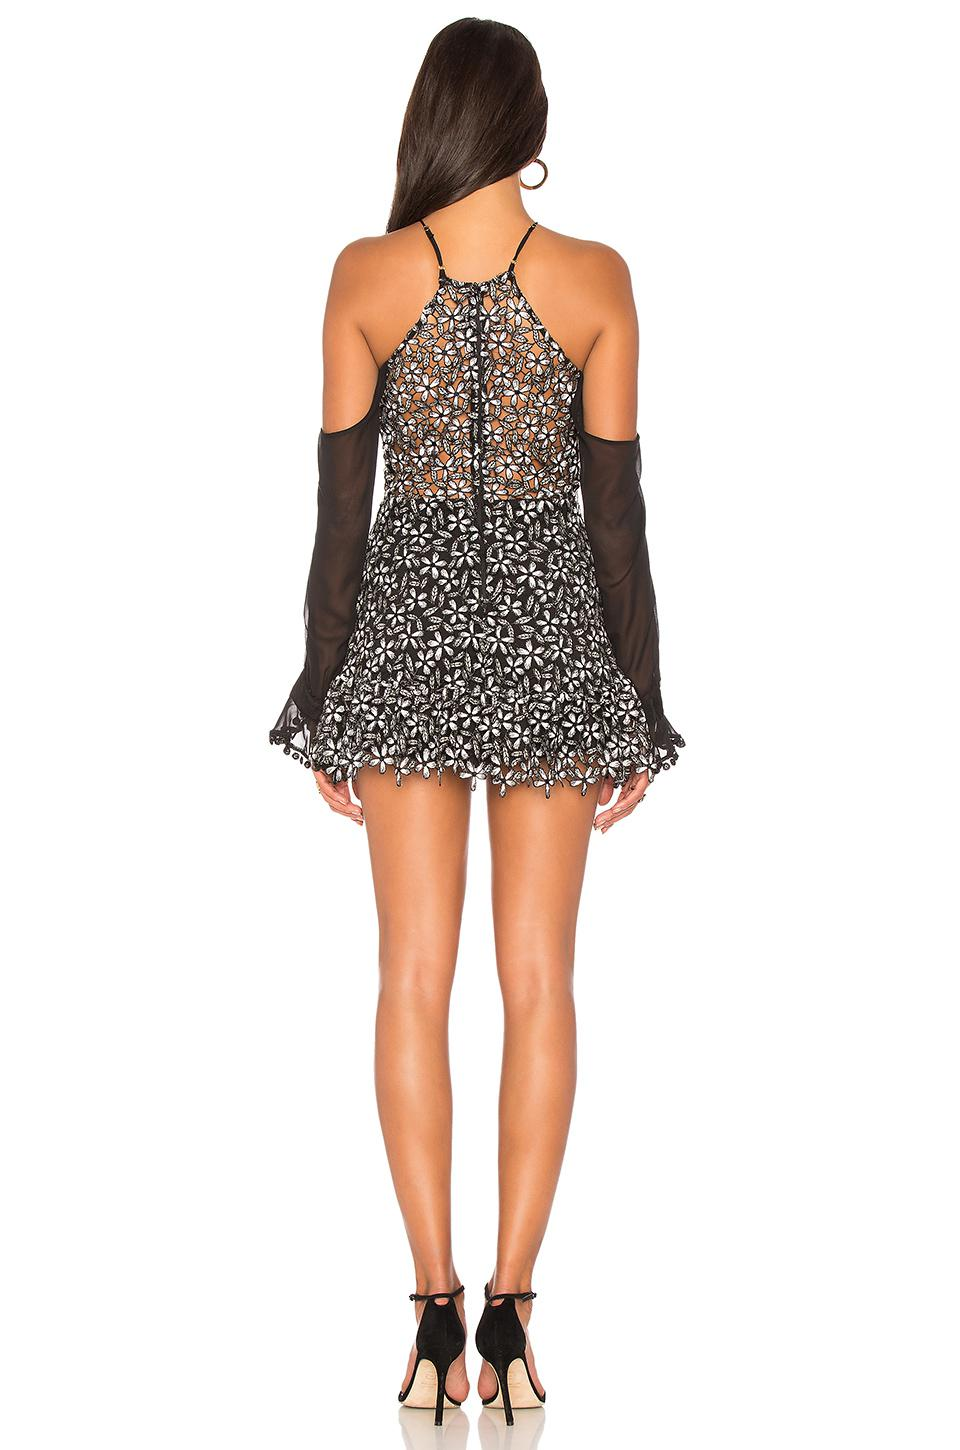 87b6061f479 Lyst - Karina Grimaldi Lia Lace Mini Dress in Black